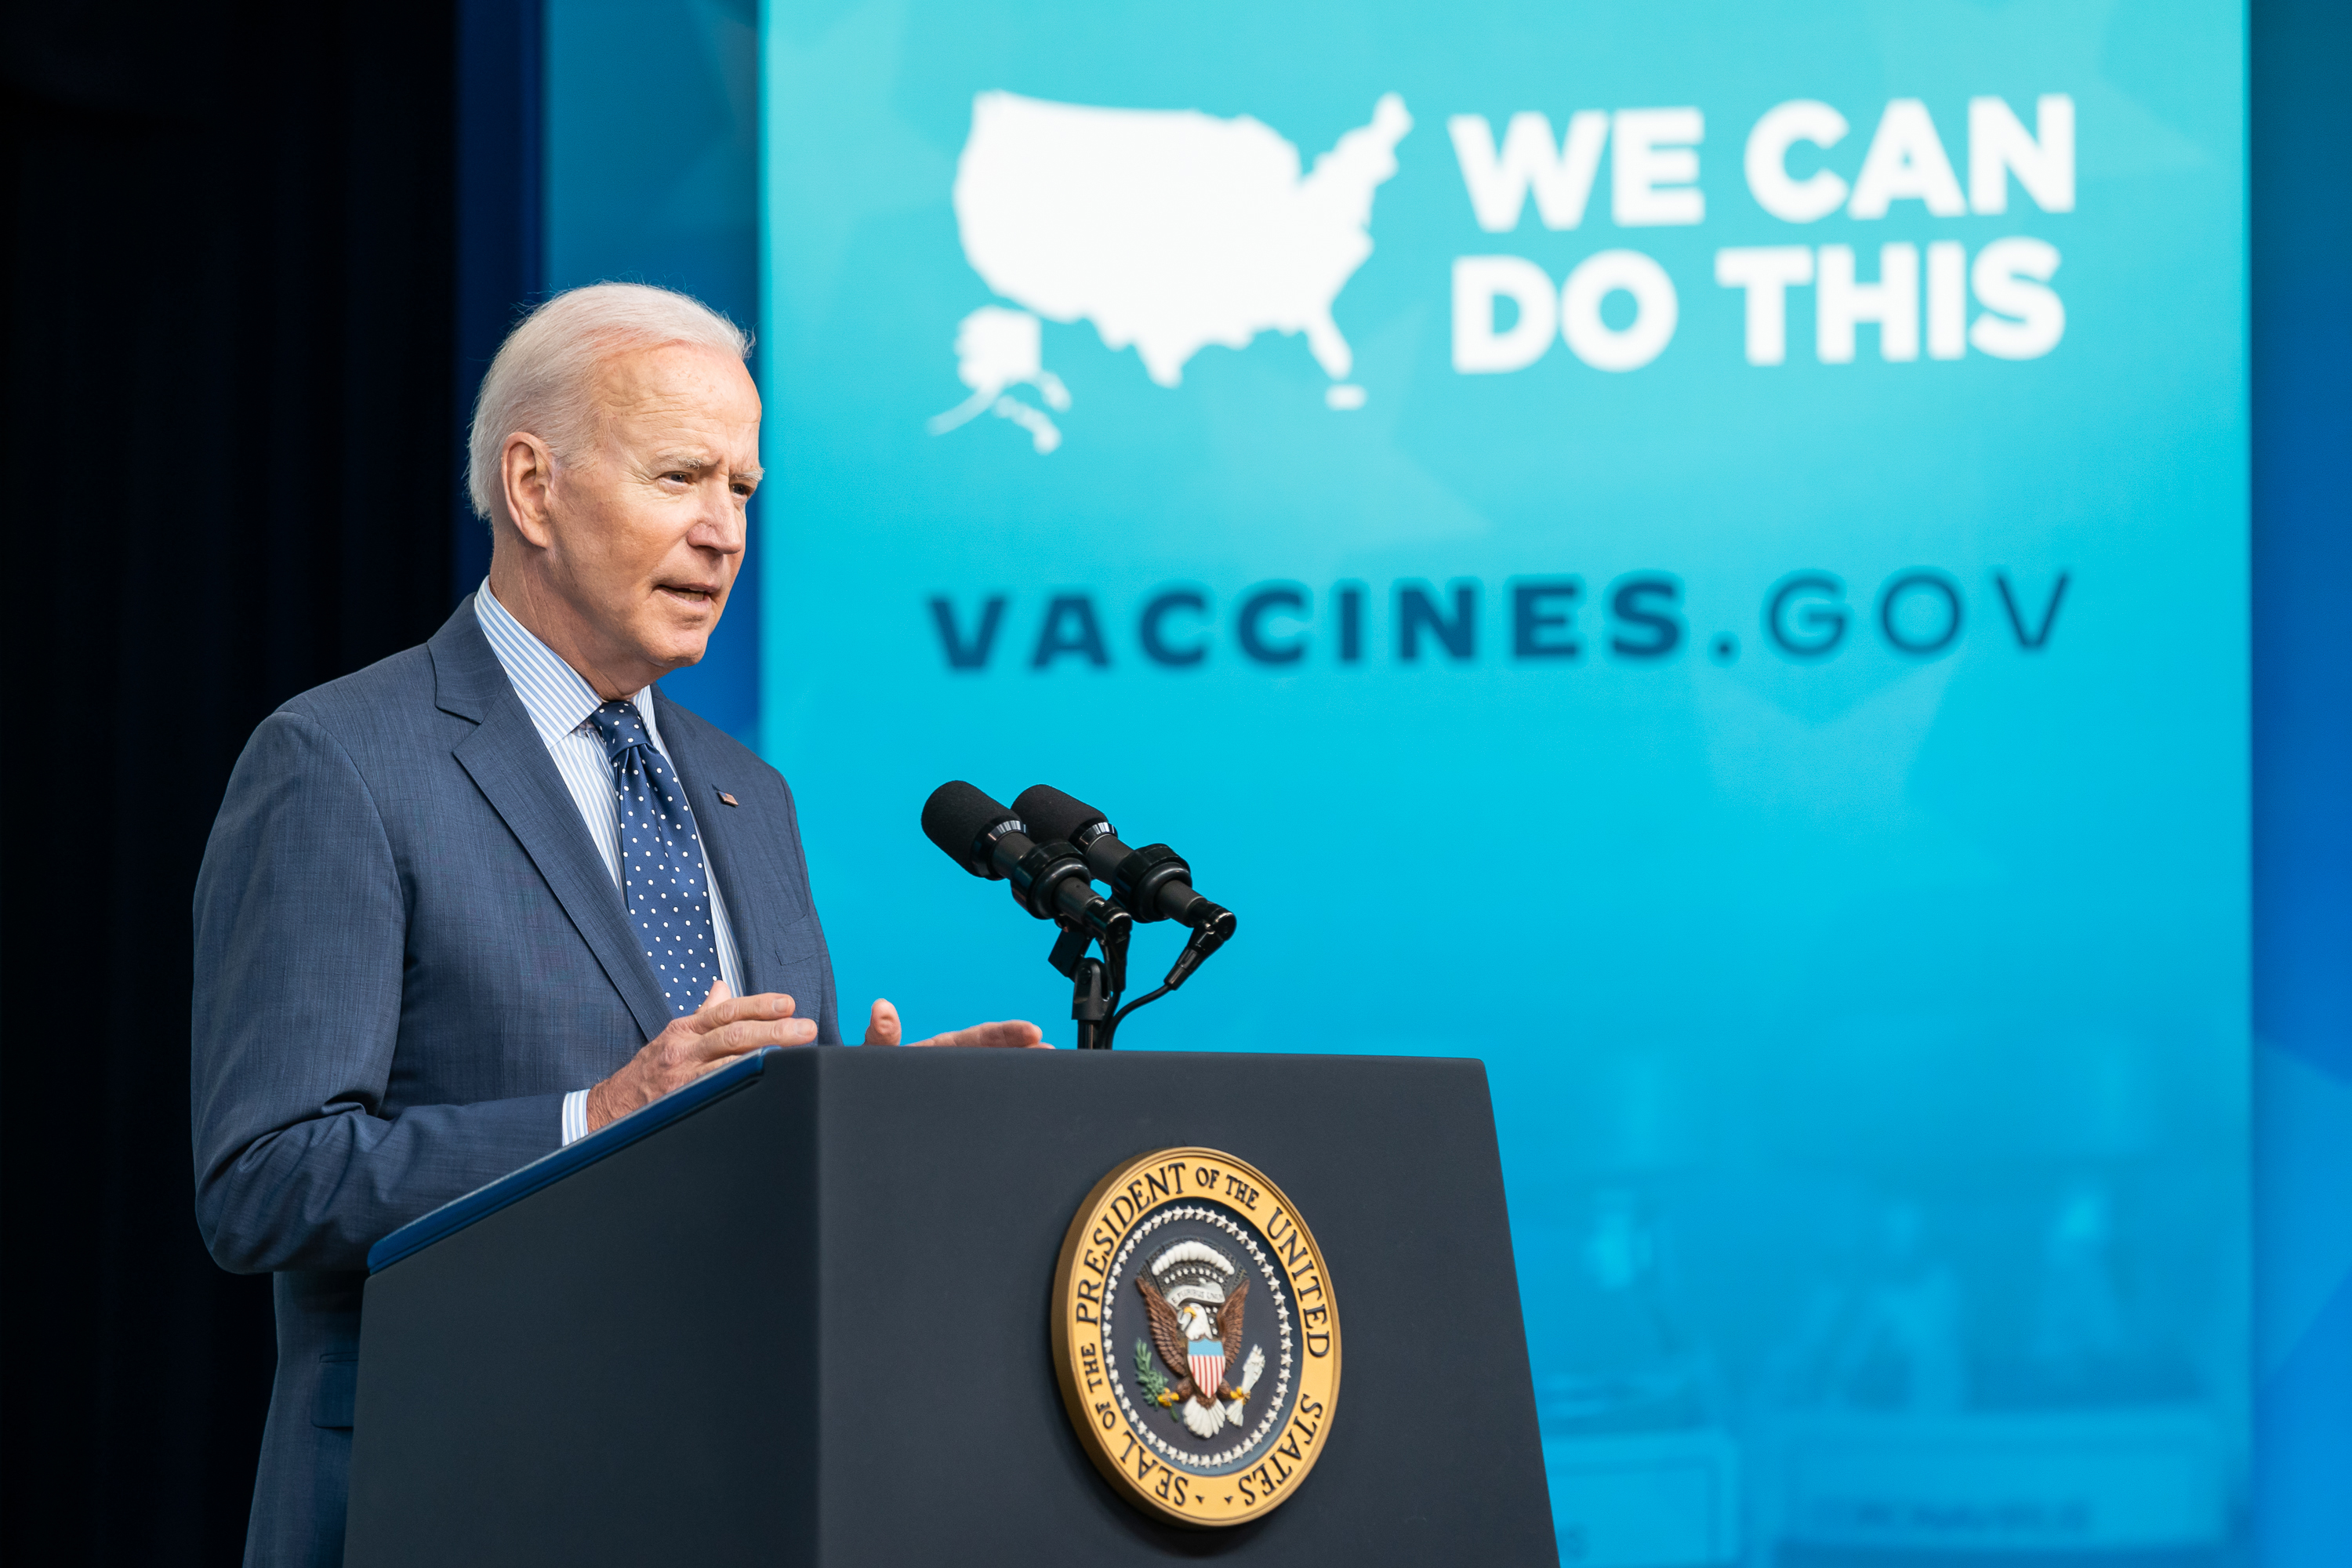 """President Joe Biden speaks in front of a banner promoting Vaccines.gov with the slogan """"WE CAN DO THIS"""""""